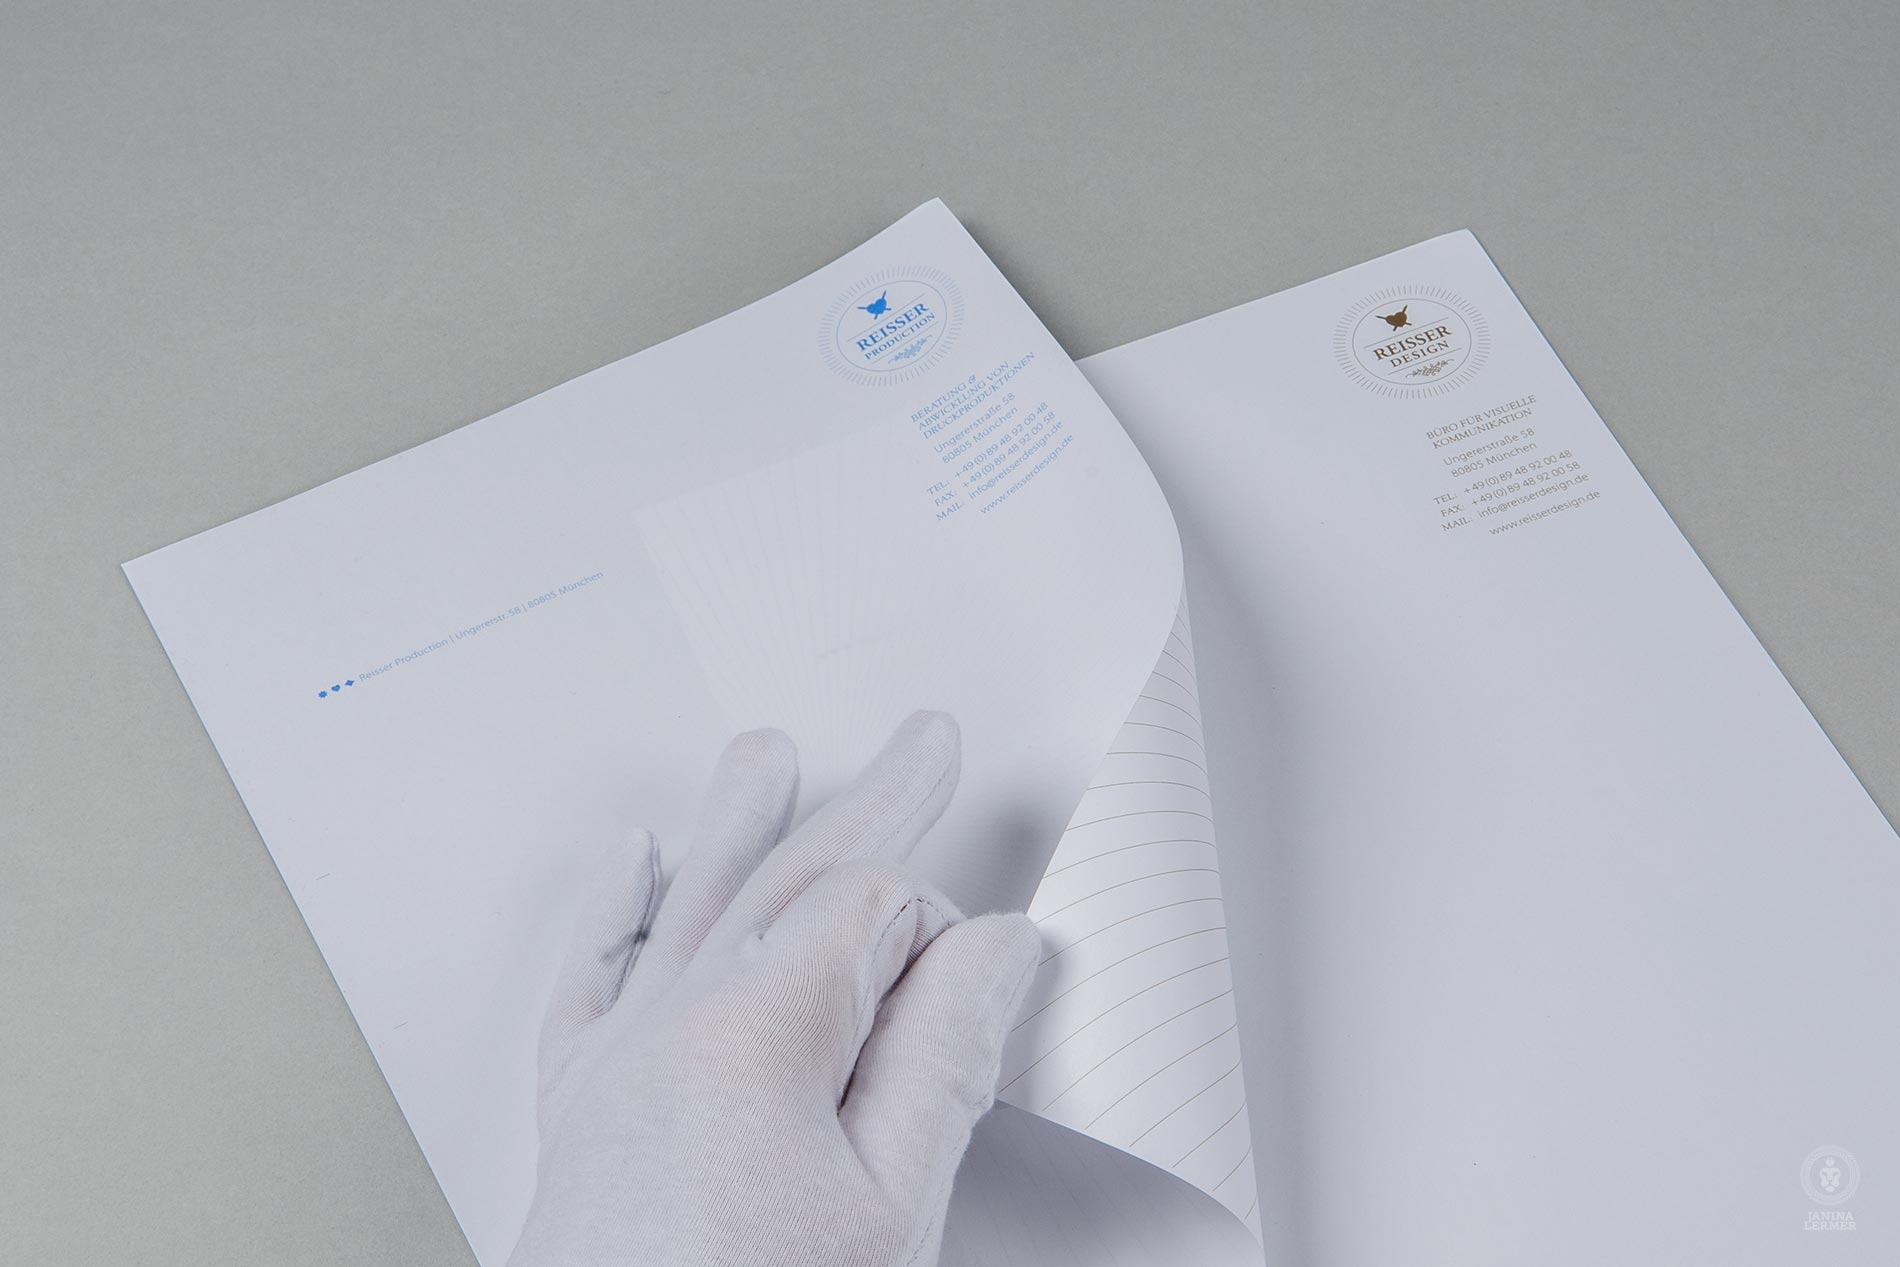 Janina-Lermer-Markengestaltung-Branddesign-Corporate-Design-Reisserdesign-Stationary-Briefpapier